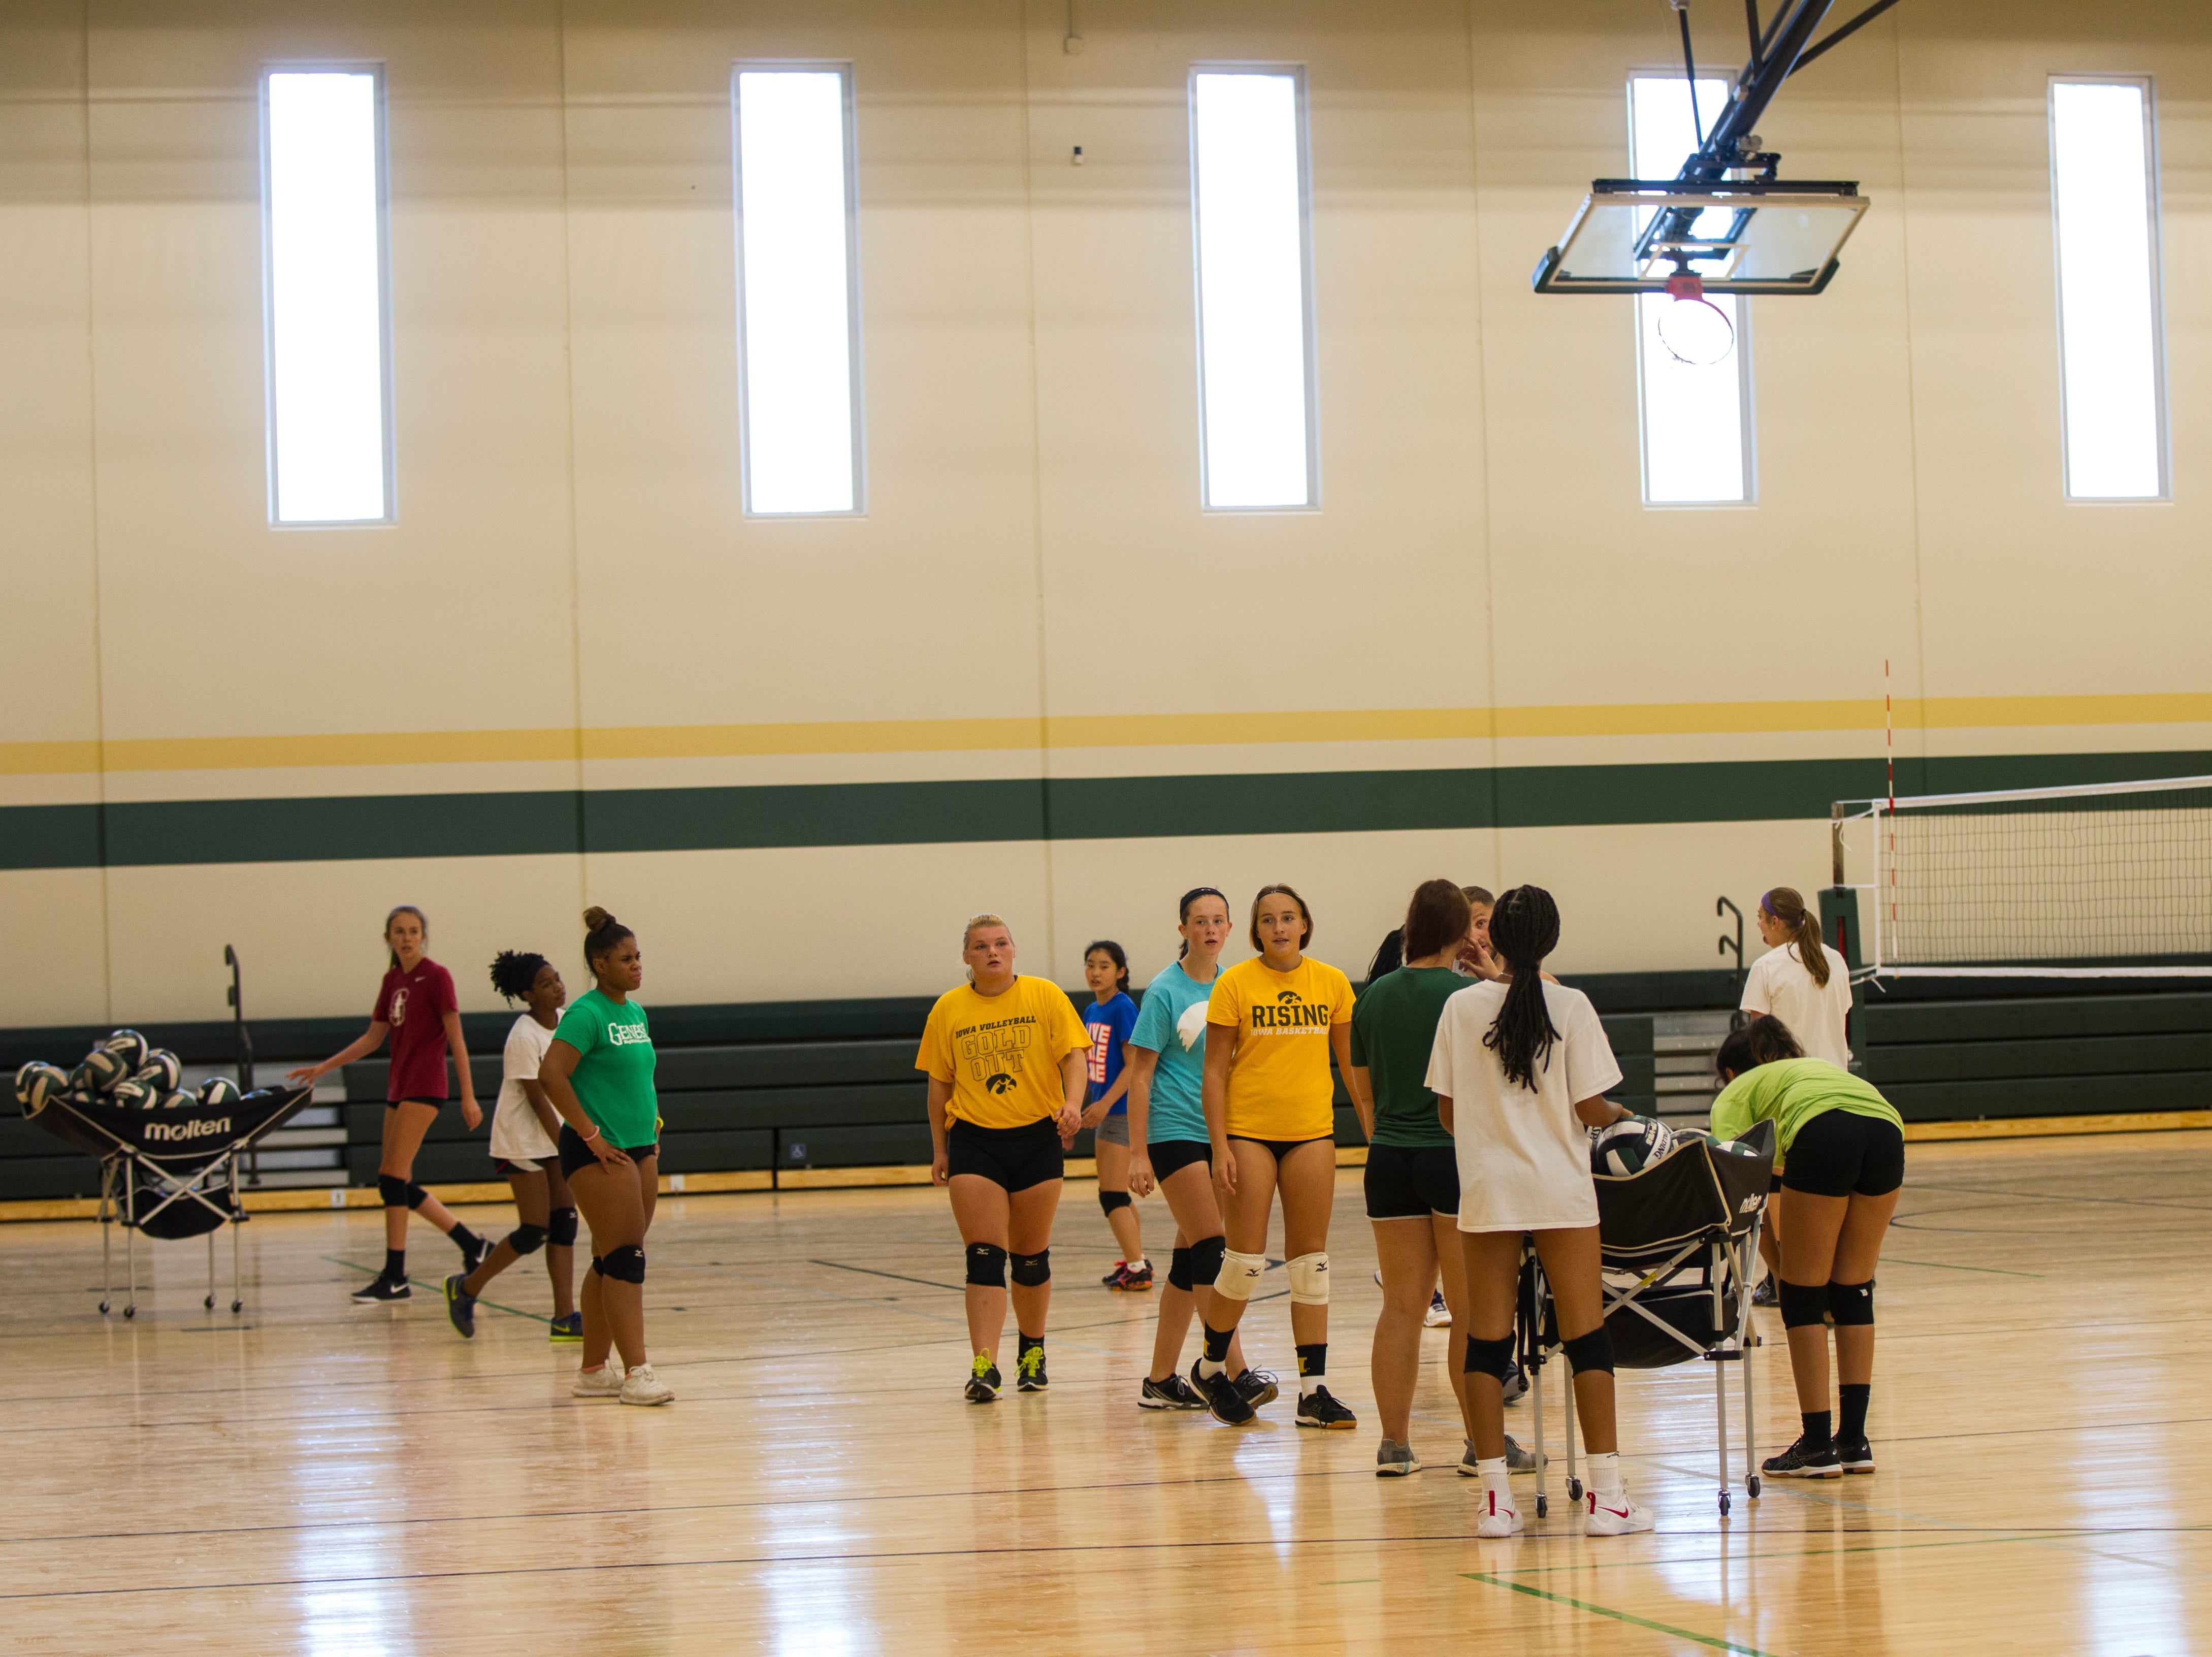 West High volleyball players practice in a new practice gym during a tour of a recently completed addition to facilities on Wednesday, Aug. 15, 2018, at West High School in Iowa City. The addition was the first phase of renovations set to take place for the building that opened in 1968.